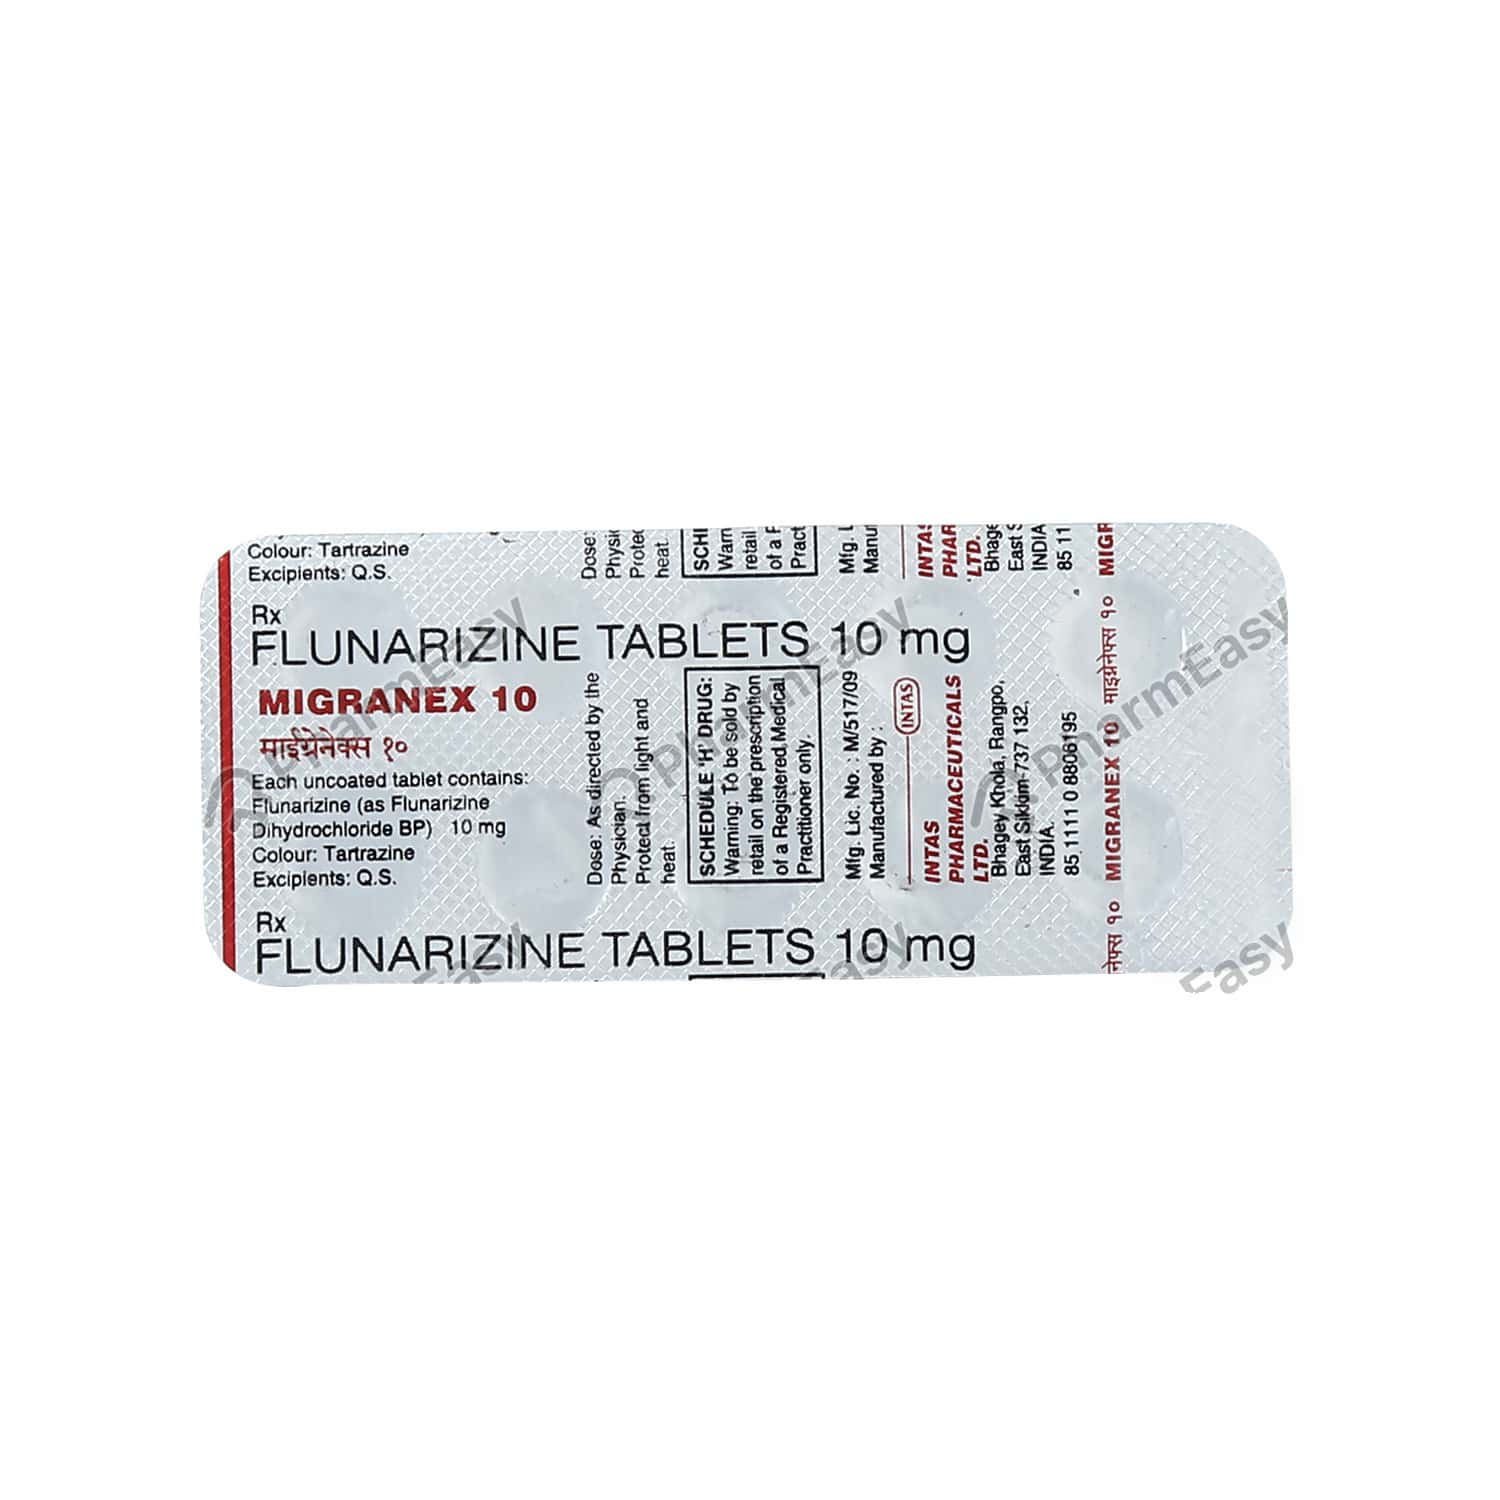 Migranex 10mg Tablet